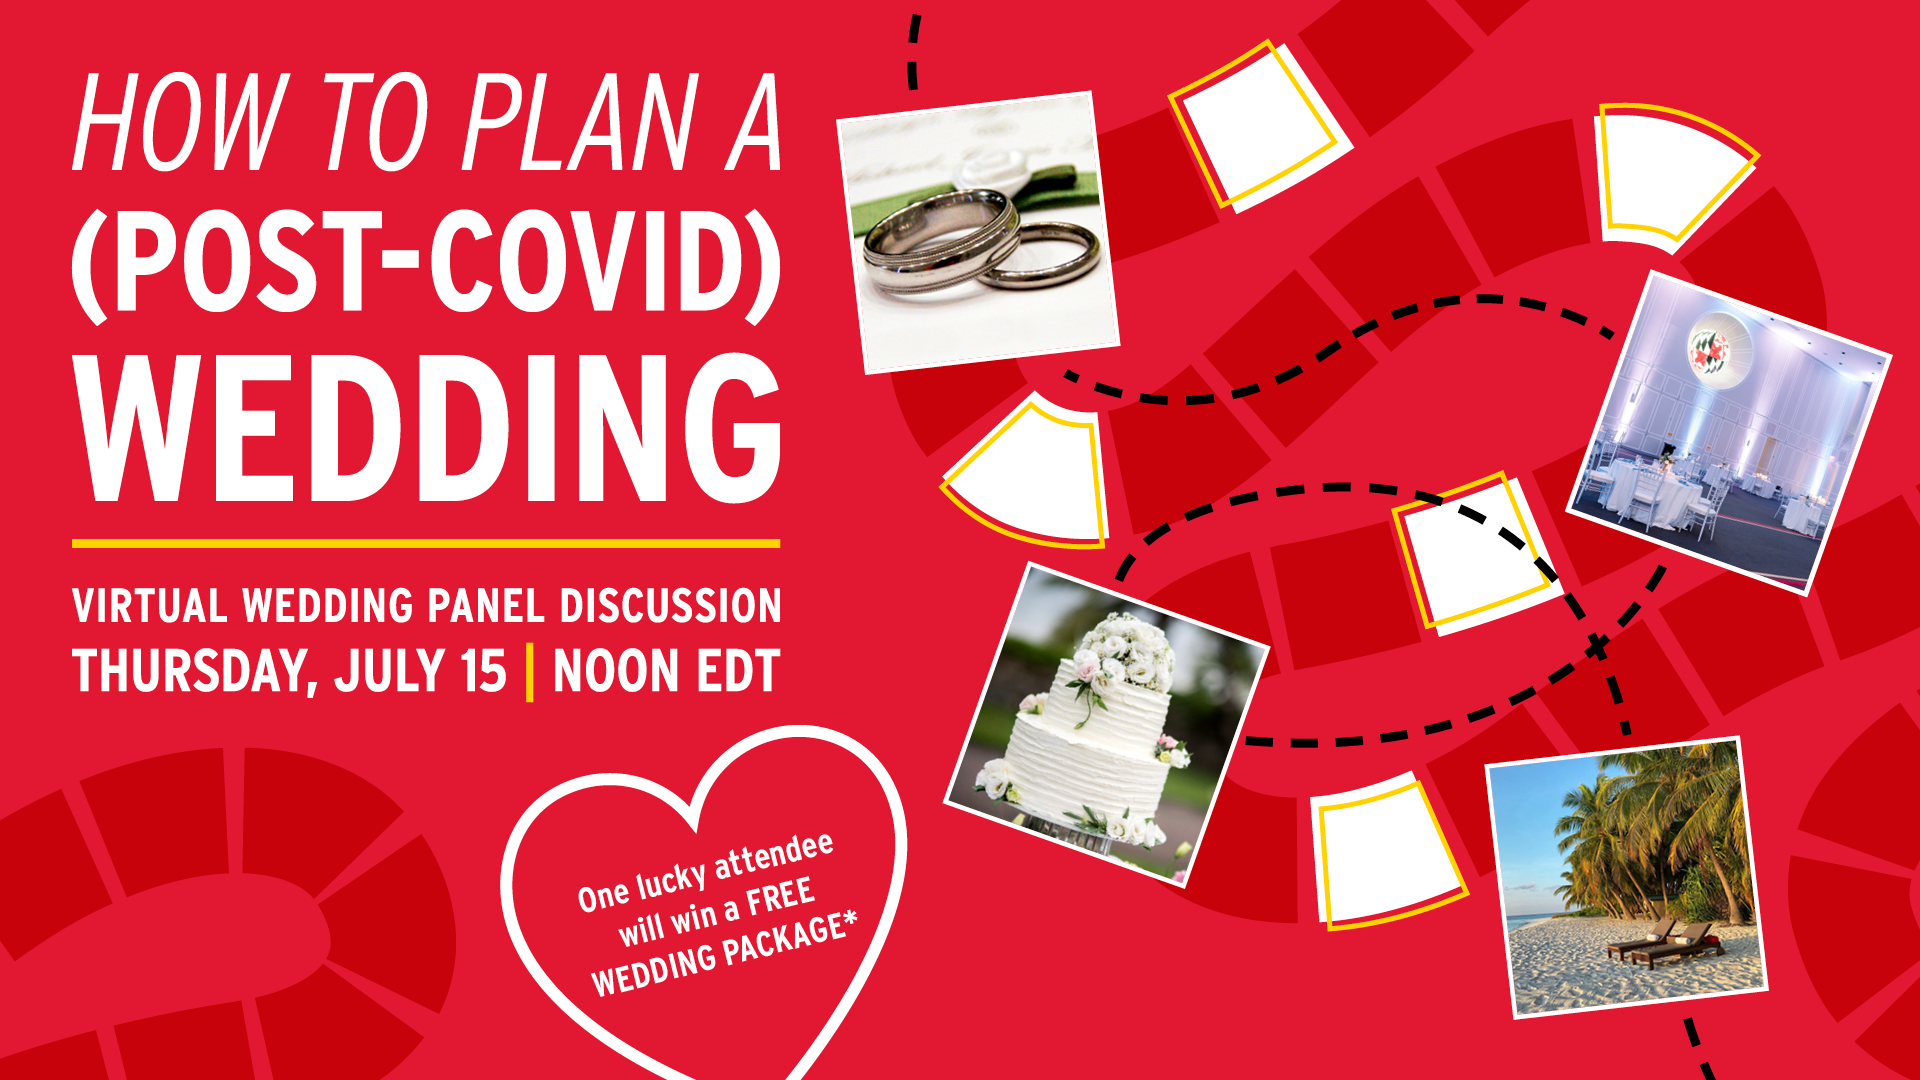 How to Plan a (Post-COVID) Wedding   Virtual Wedding Panel Discussion   Thursday, July 15   Noon EDT